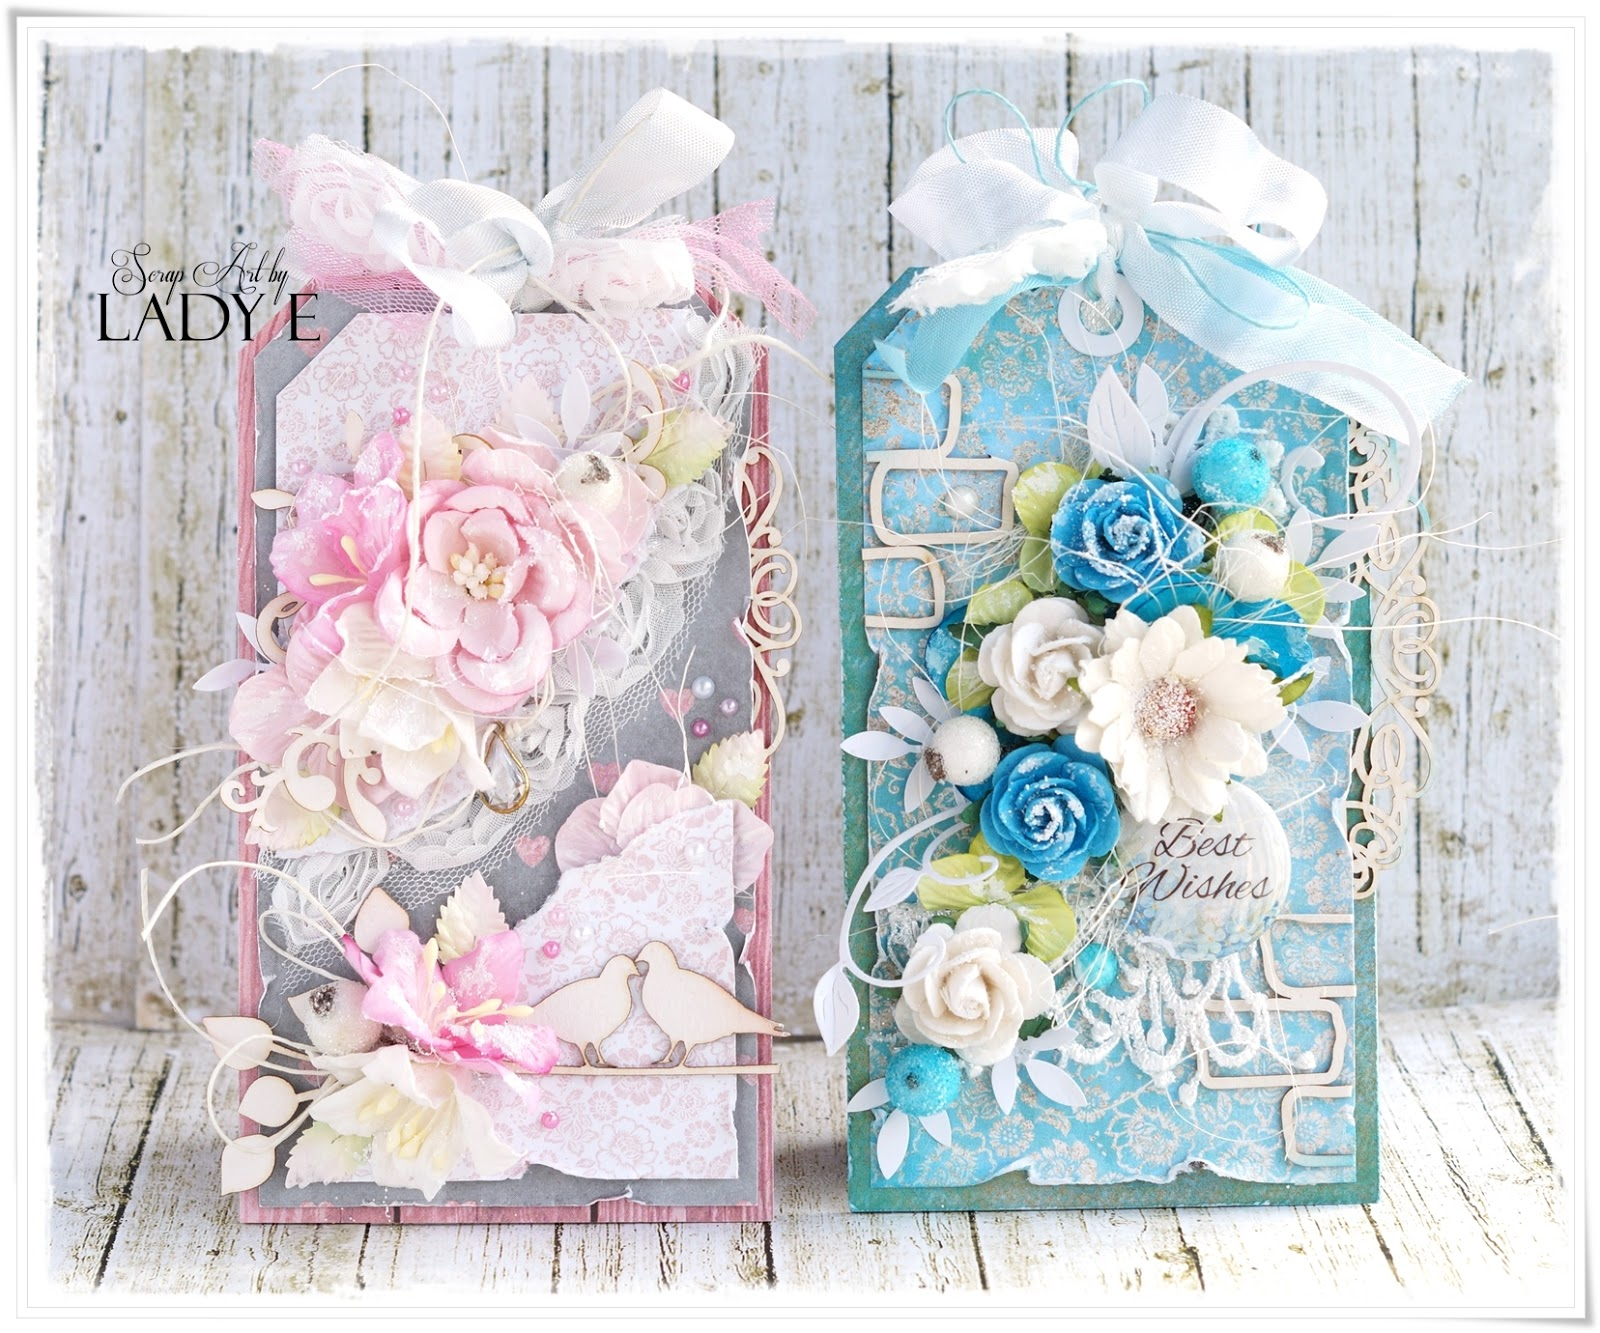 Wild Orchid Crafts: 2 Shabby Chic Tags